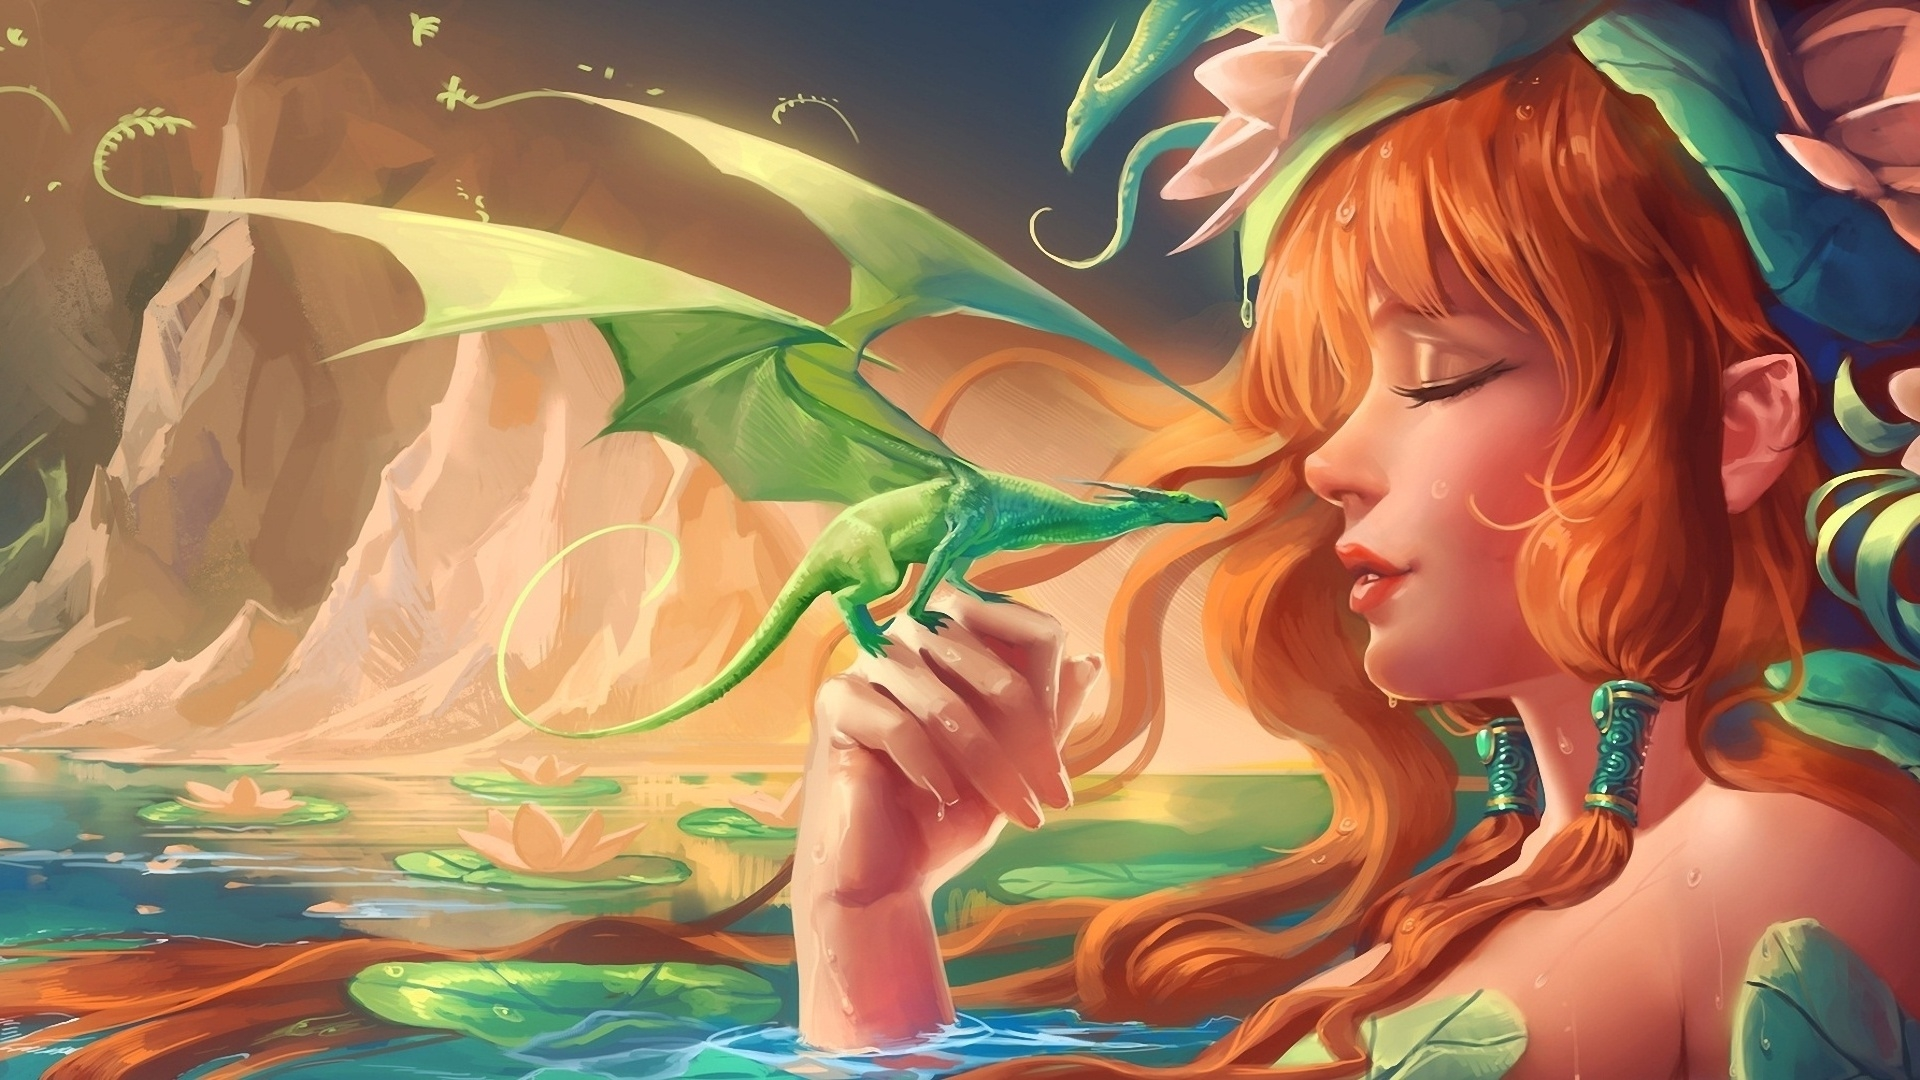 girl-dragon-baby-mountains-water-water-lily-1920x1080